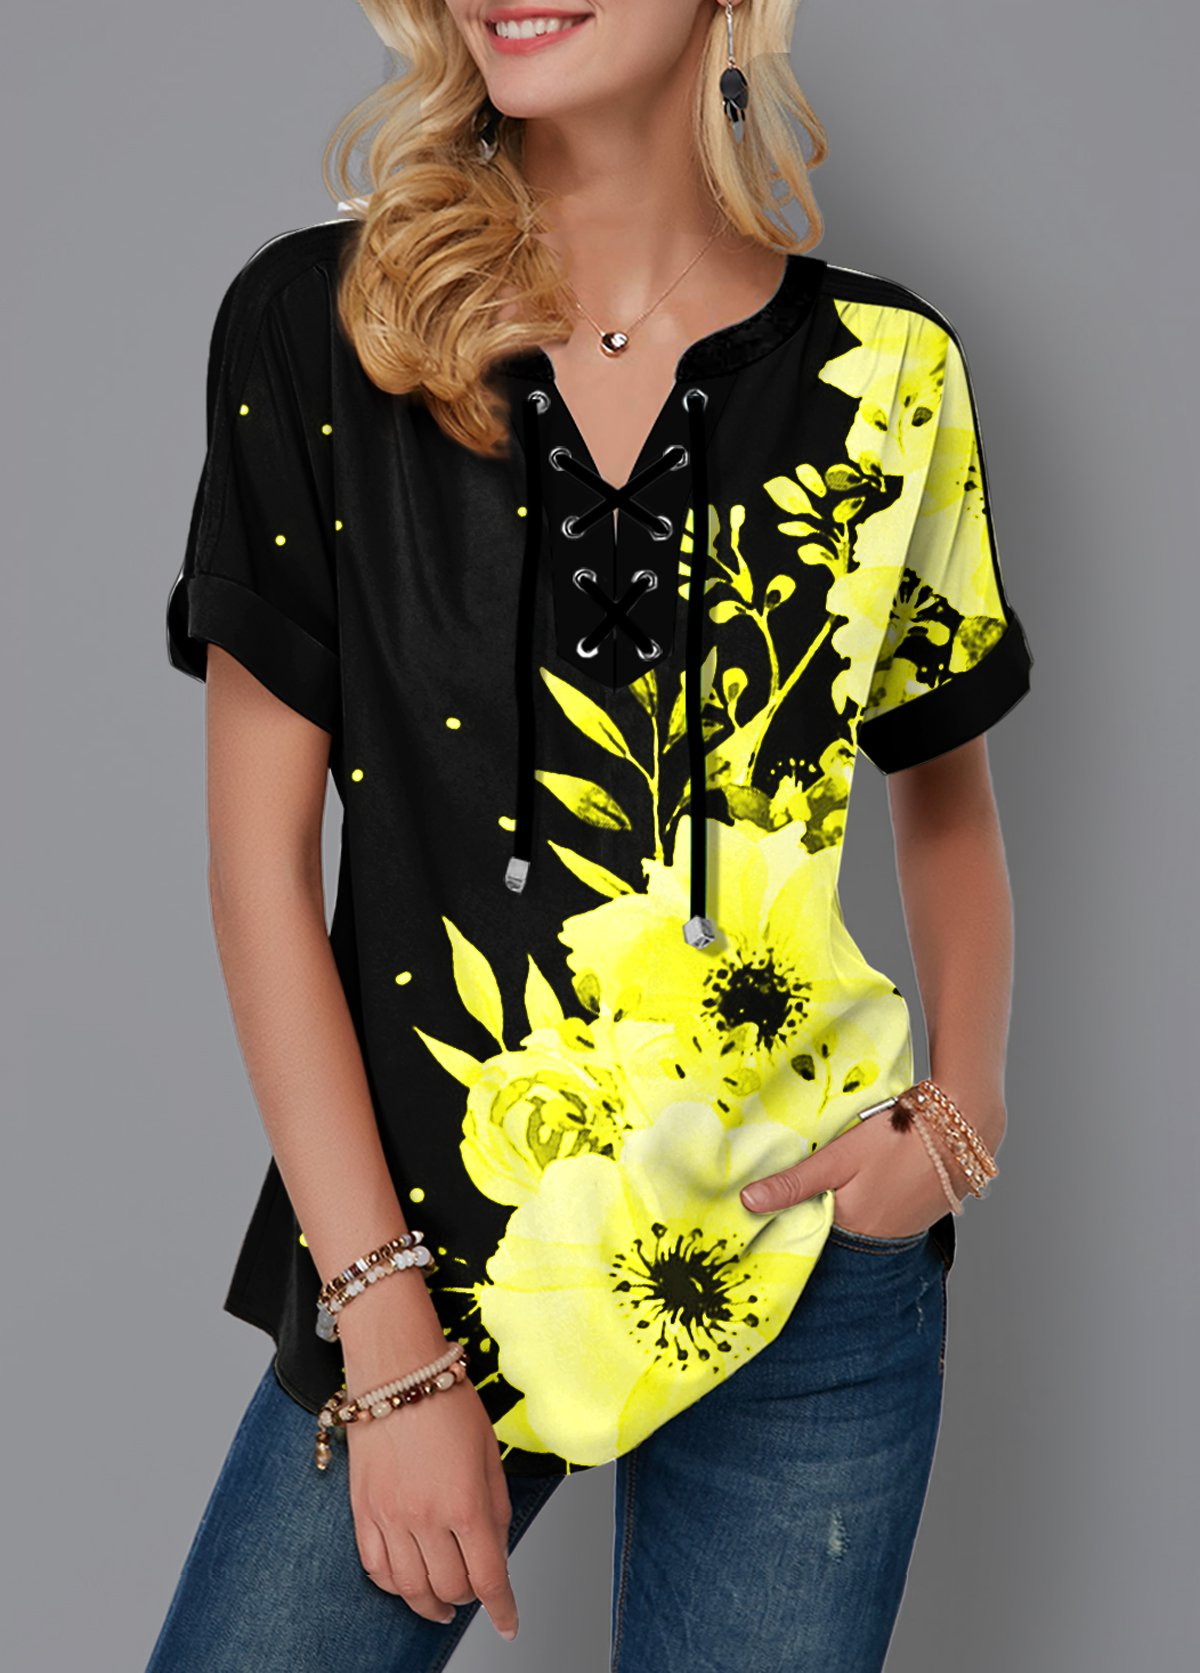 ROTITA Lace Up Floral Print Short Sleeve Blouse